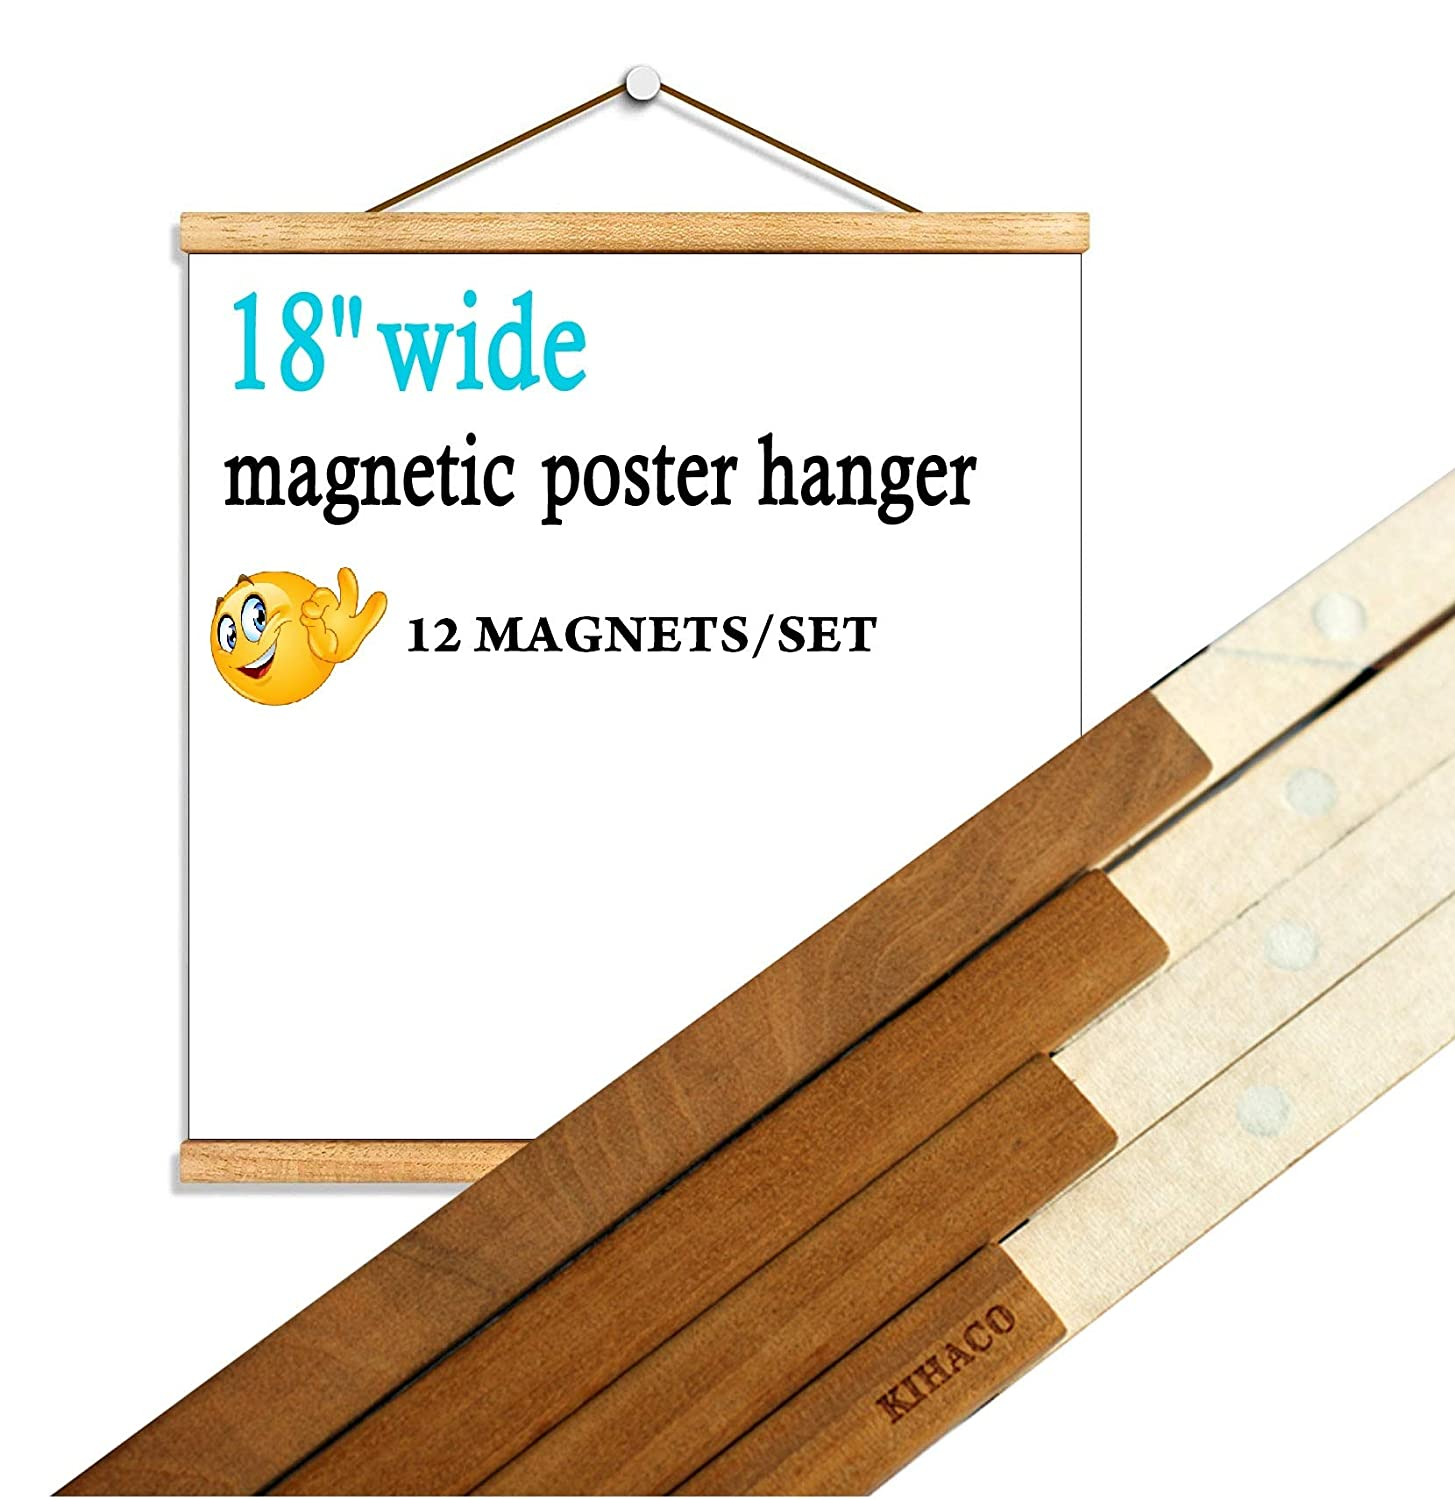 KIHACO Poster Frame 18x24 Magnetic Poster Hanger Wood Picture Frames 18 x 24 Inches Wall Picture Hangers Wooden Frame with Strong Magnet for Hanging Posters Artworks Pictures Prints Map Teak, 1 Set